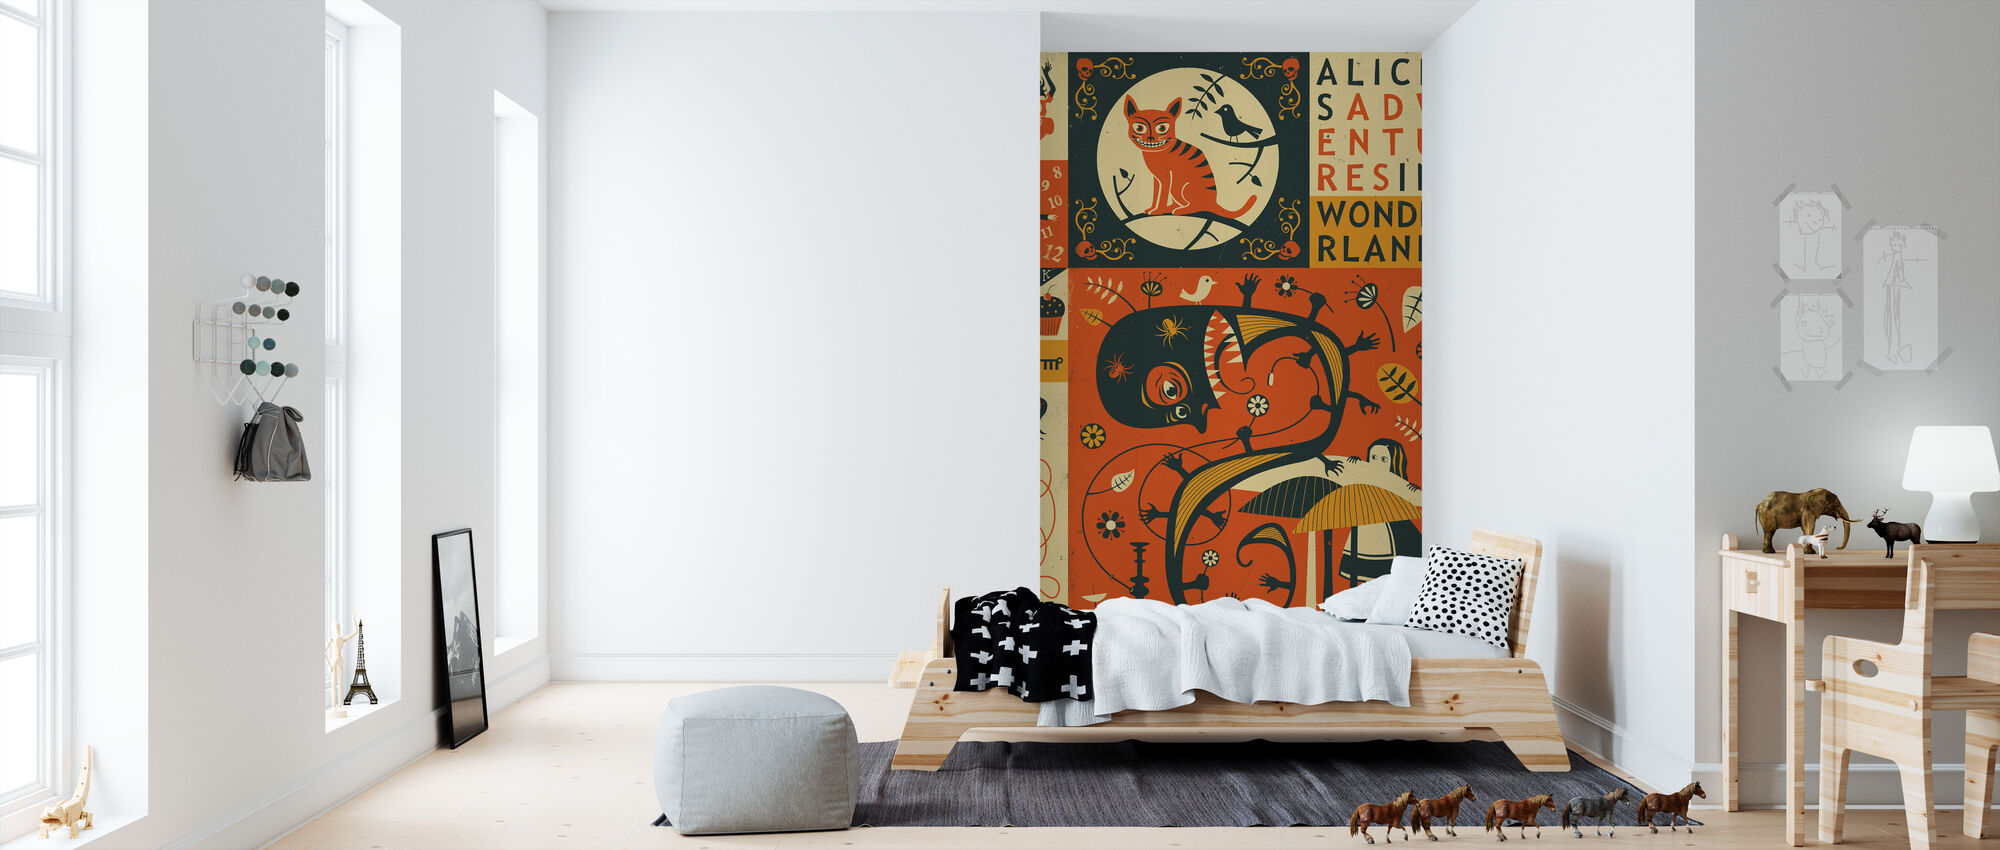 Alice In Wonderland High Quality Wall Murals With Free Delivery